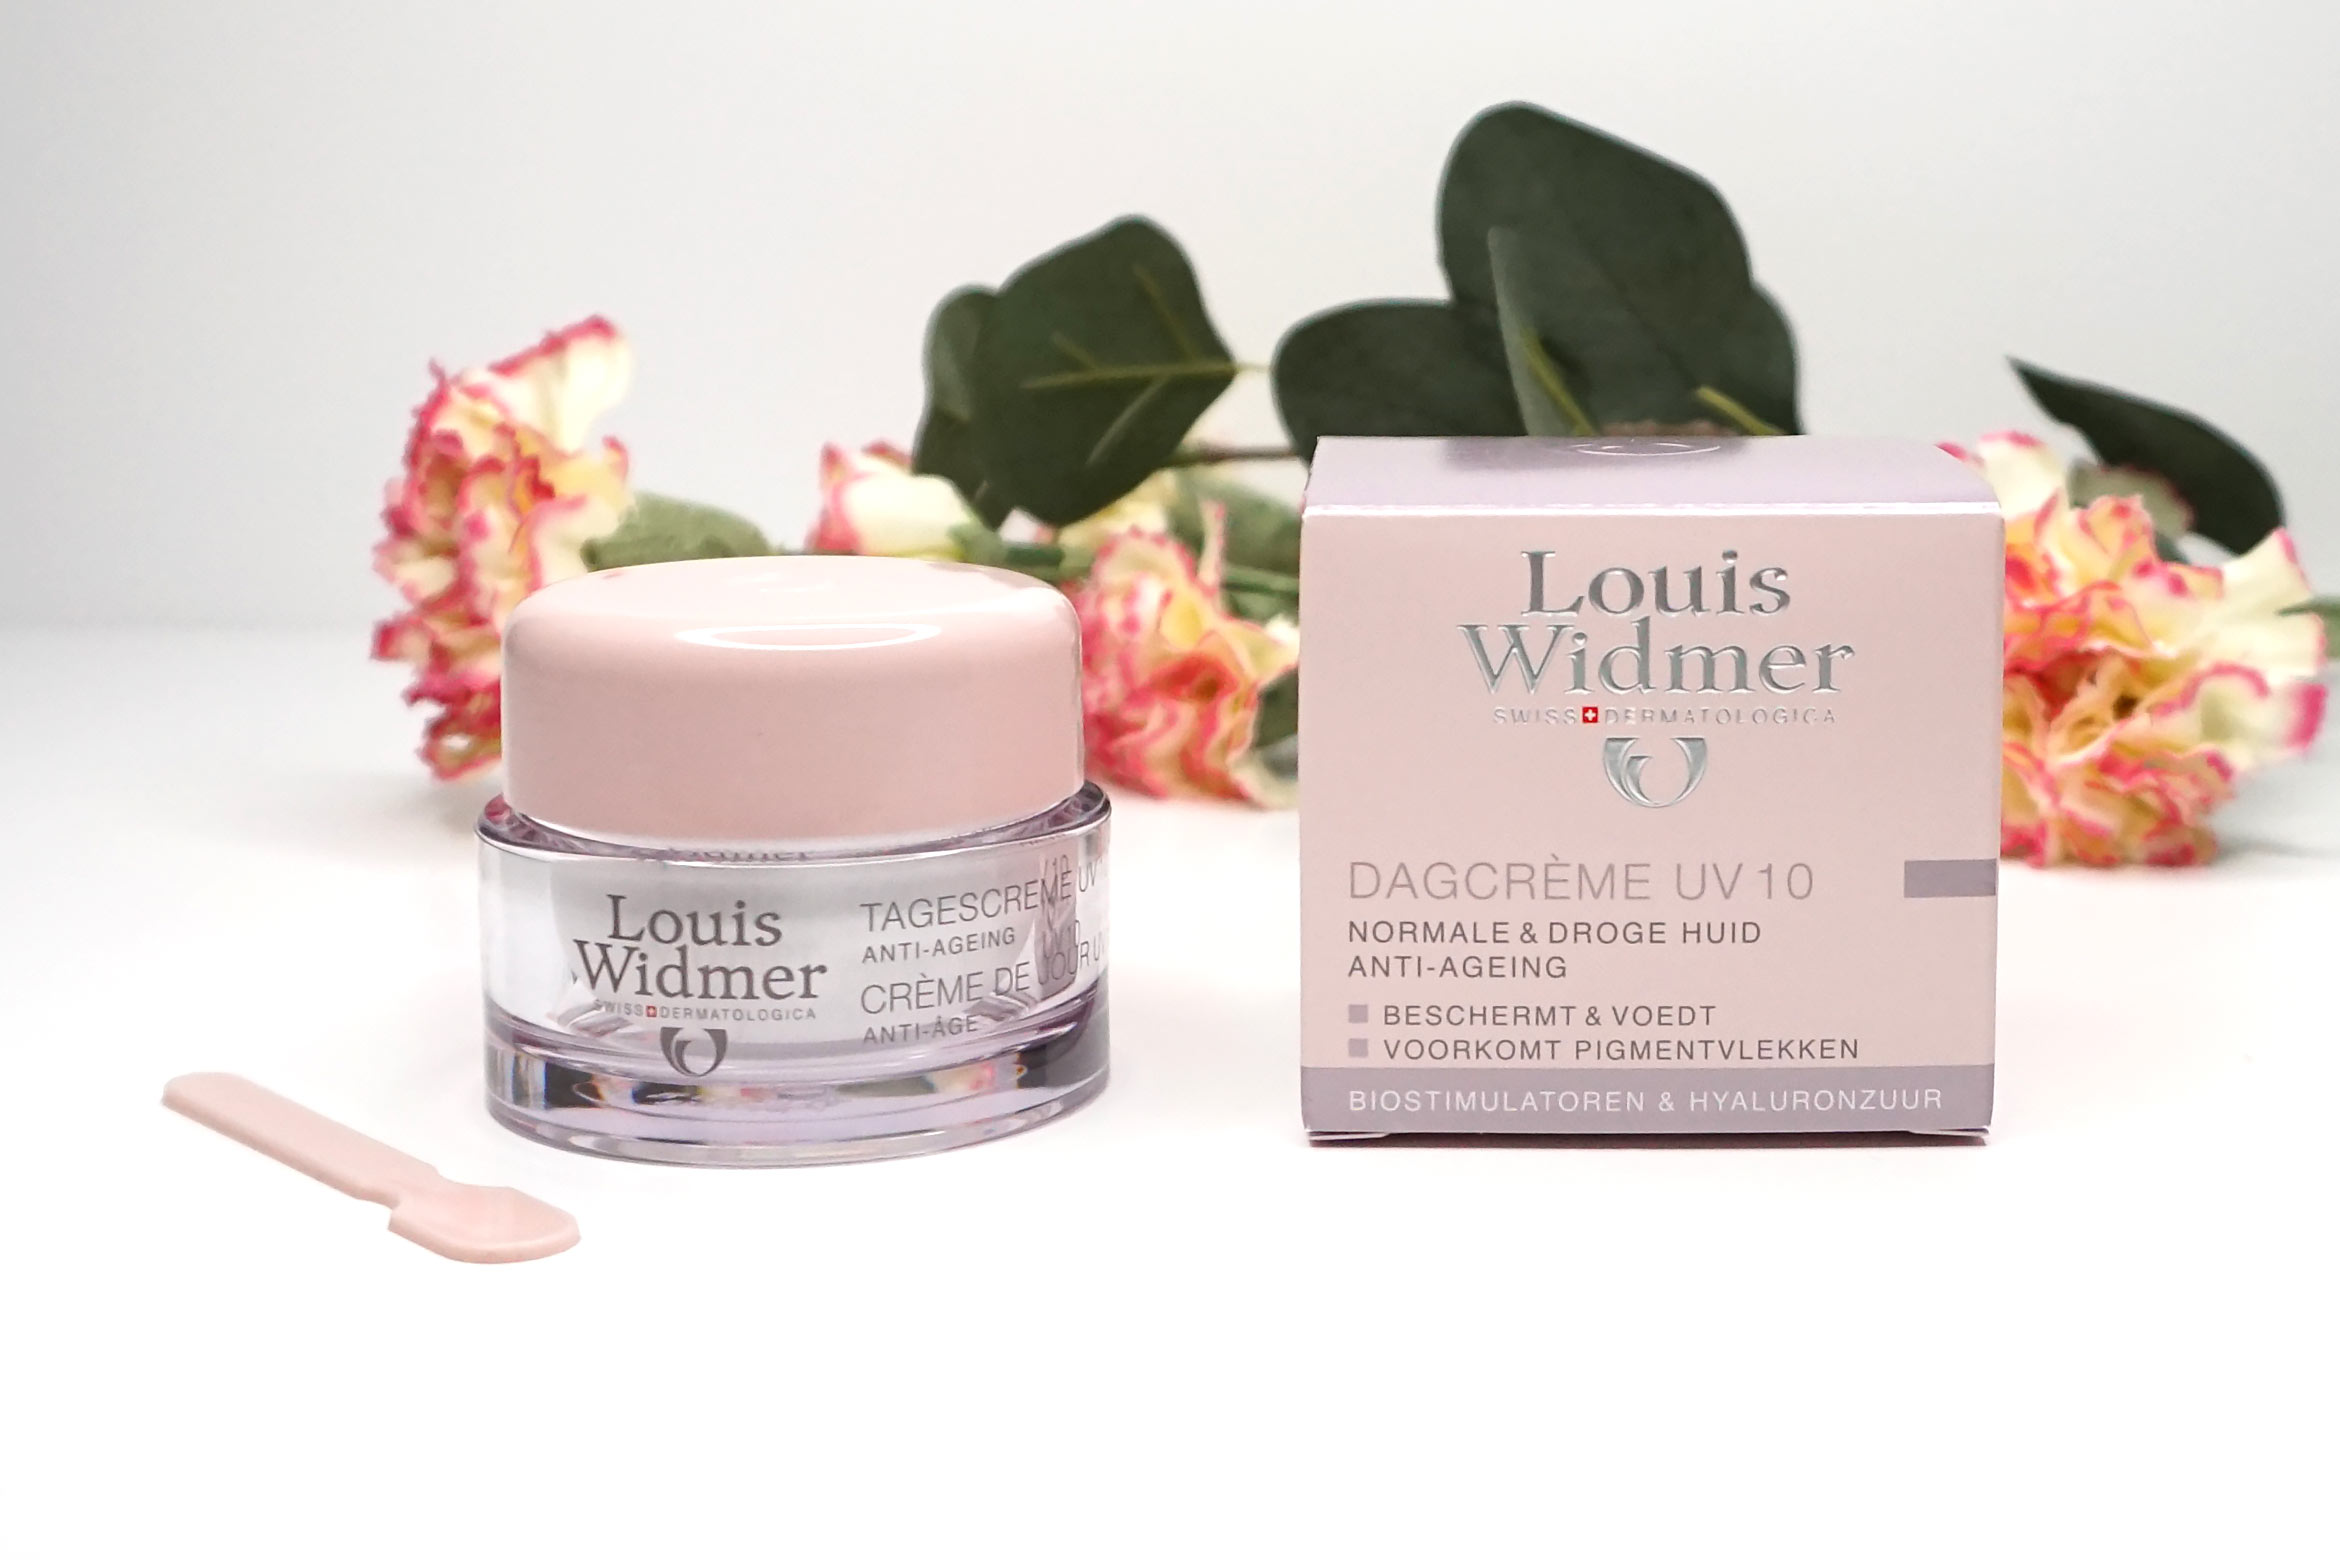 louis-widmer-dagcreme-uv-10-review